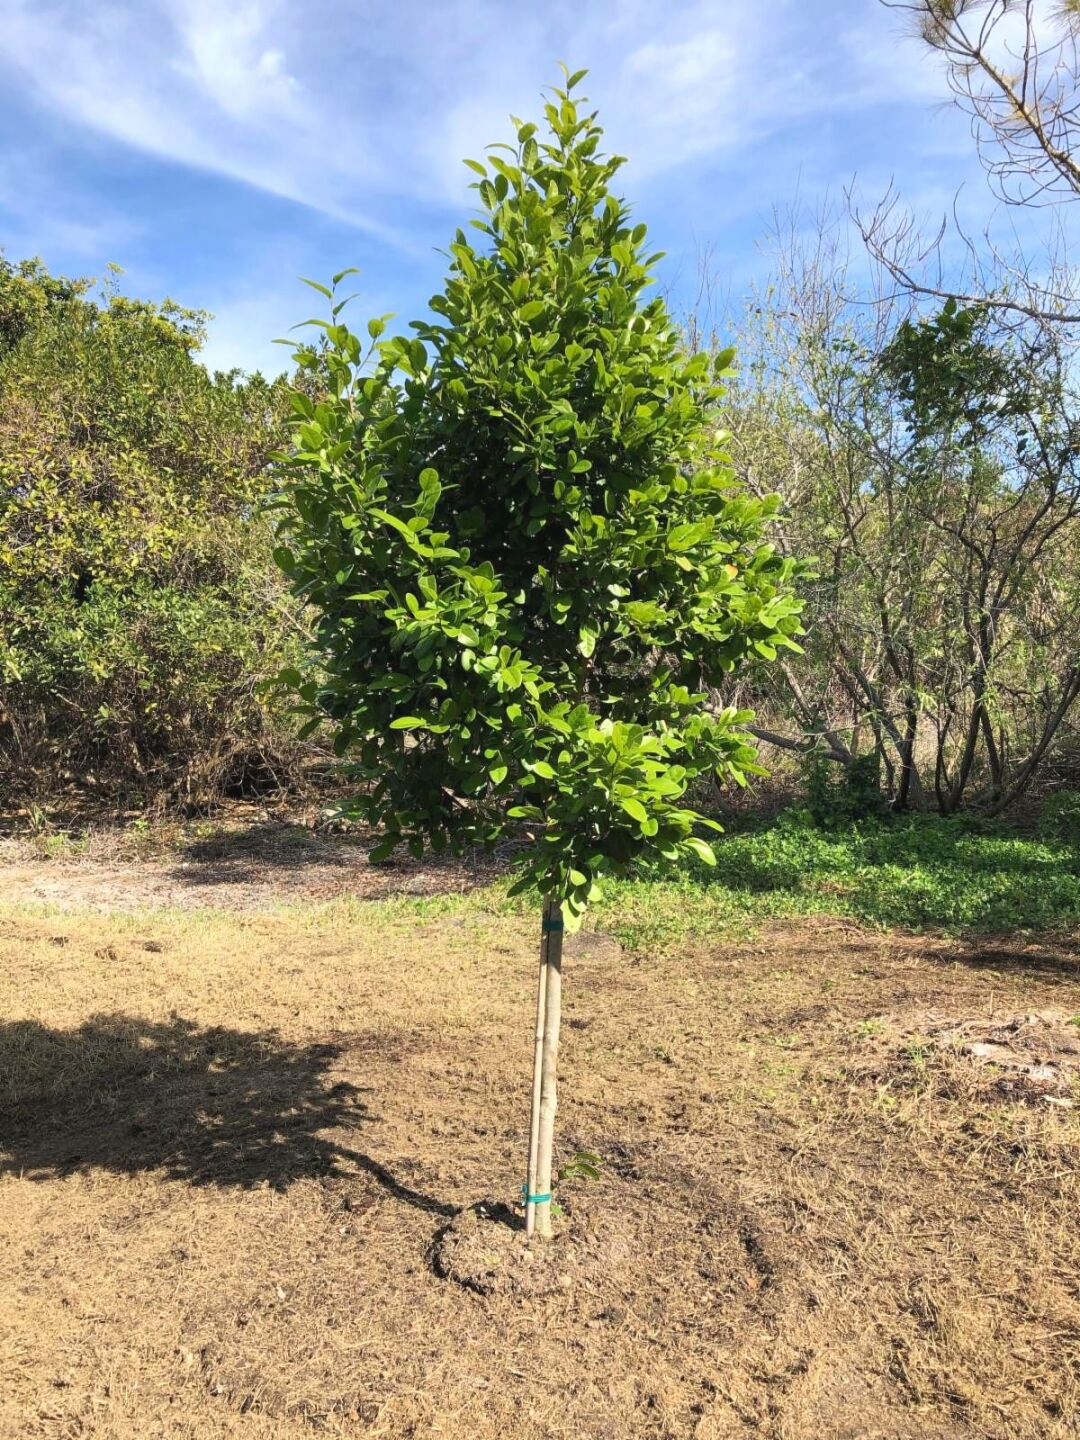 """""""The first tree she planted in our yard on Buttonwood Lane in 1985 was a pigeon plum. That same tree today is vital, strong and has many different native trees, shrubs and plants alongside of it that Dee planted and loved throughout the years,"""" Luc Century"""